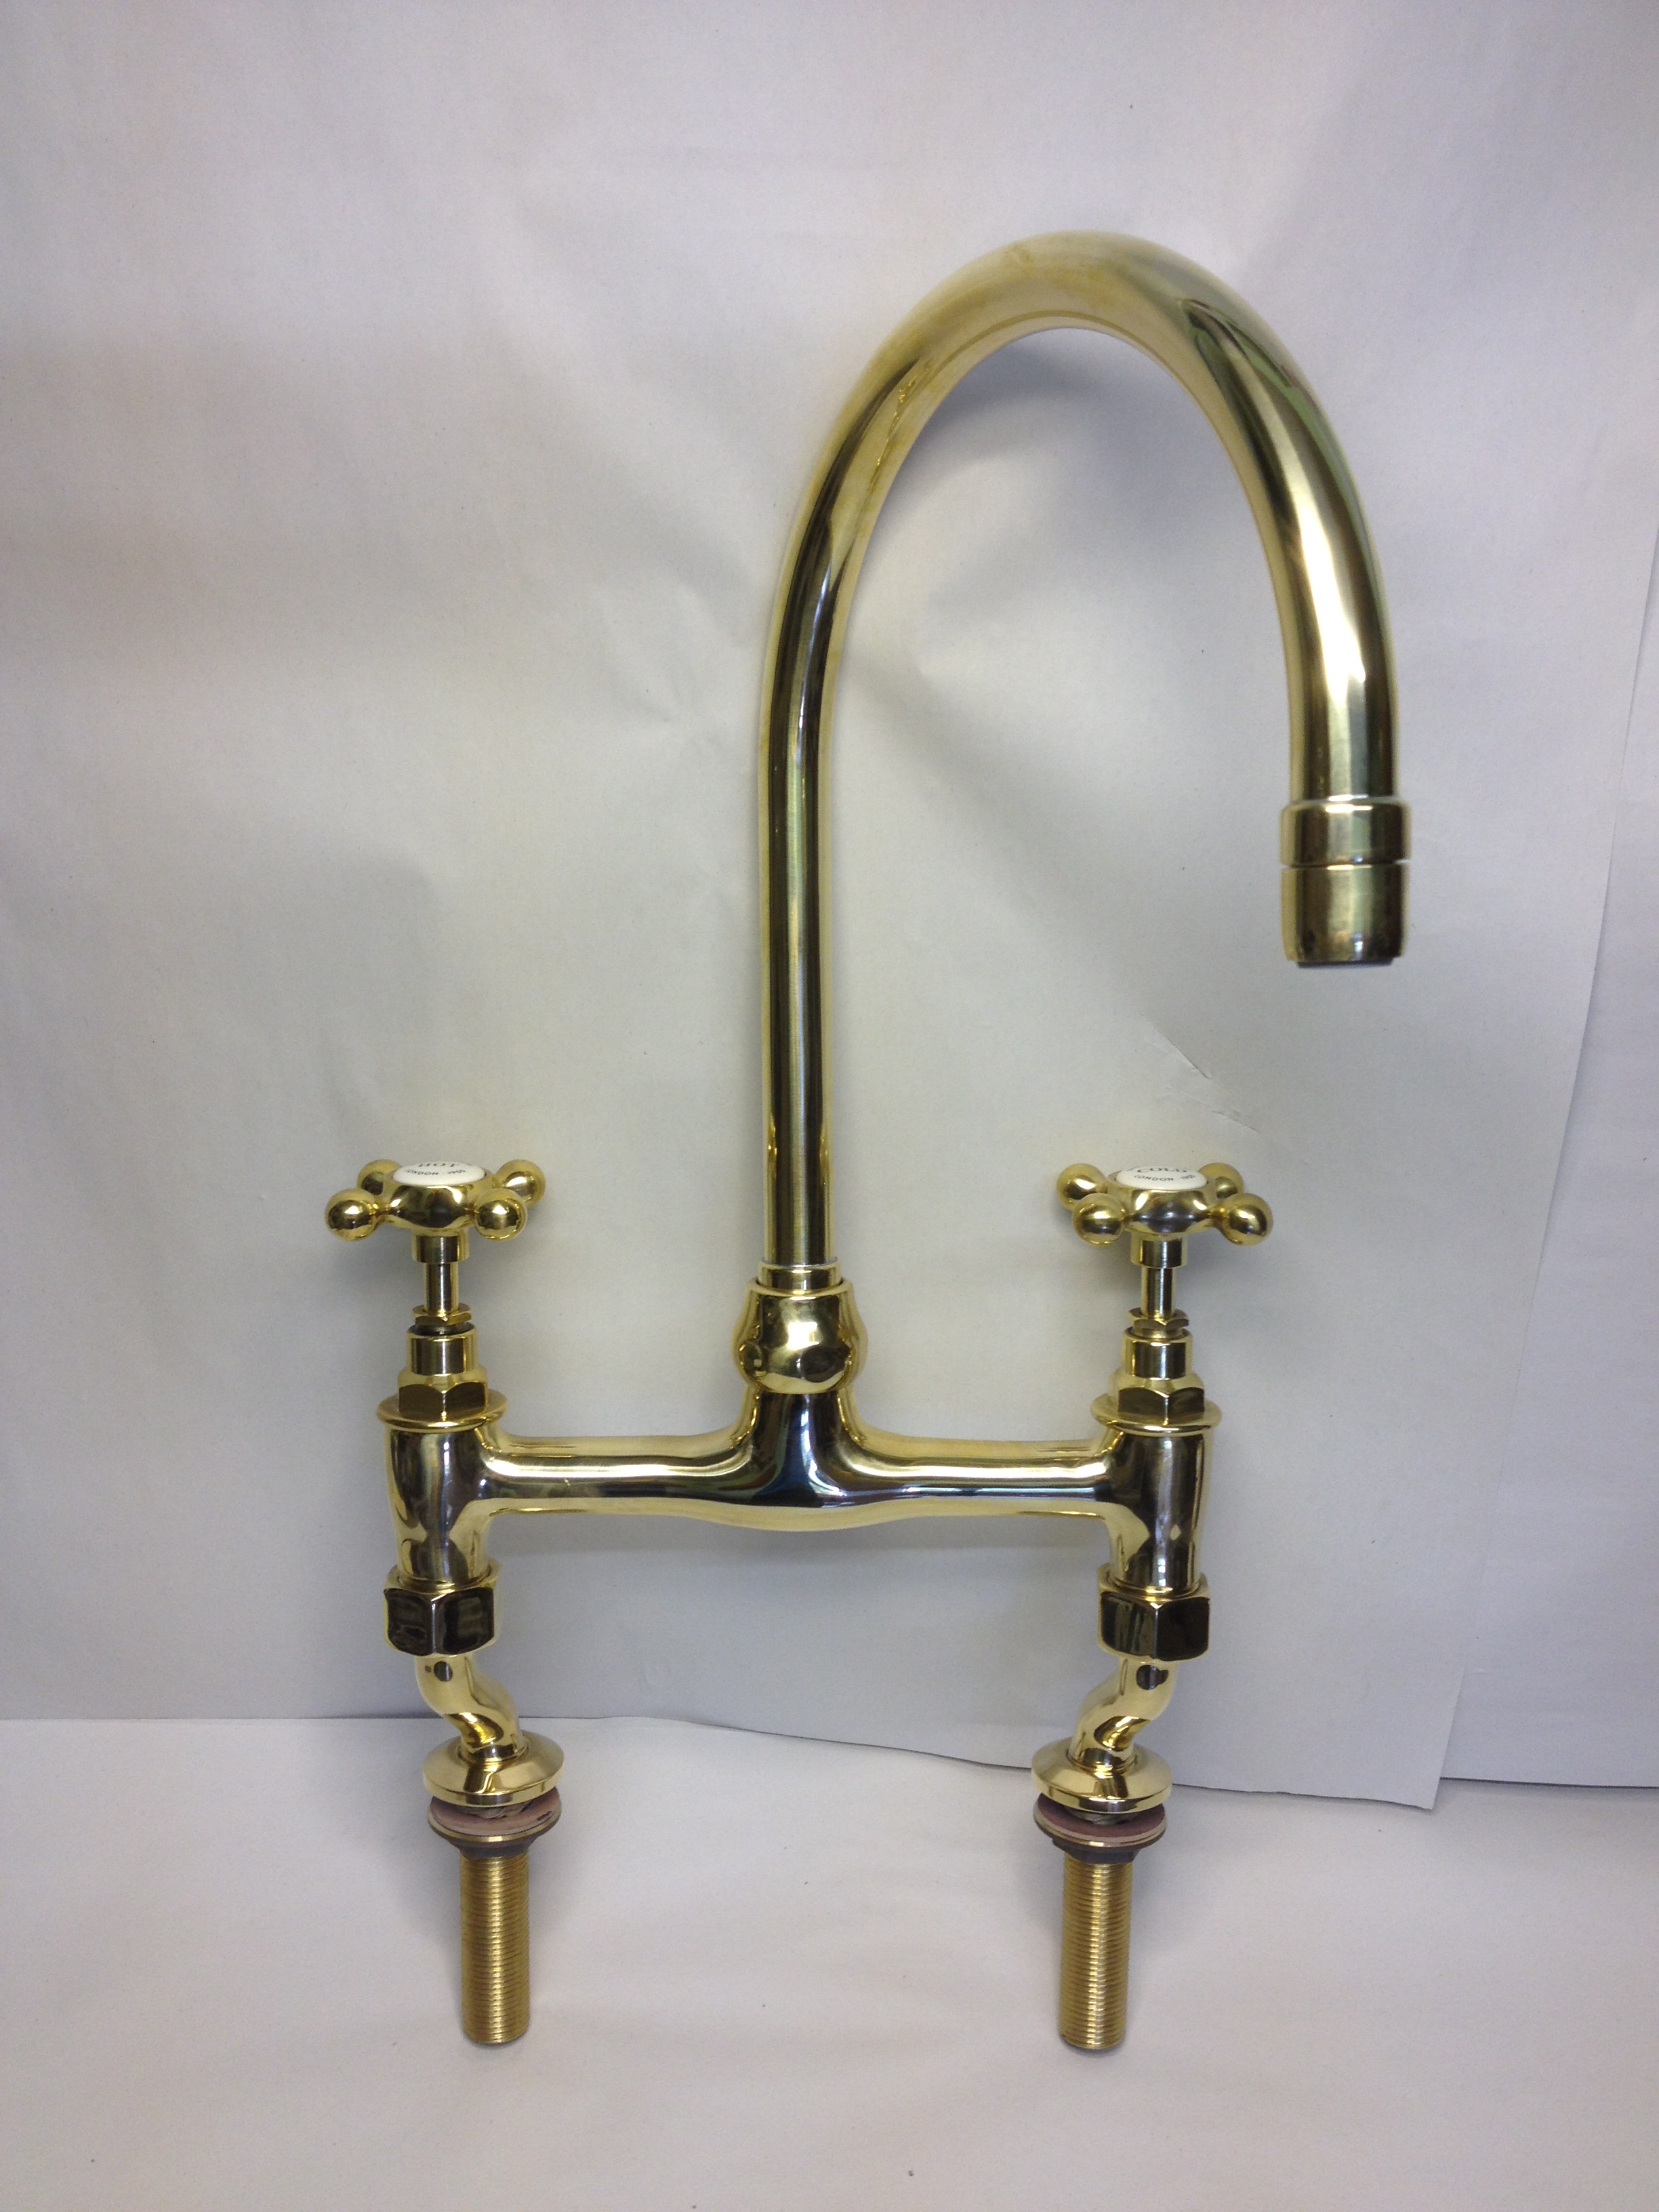 Kitchen Bridge Mixer Taps In Polished Brass For Sale